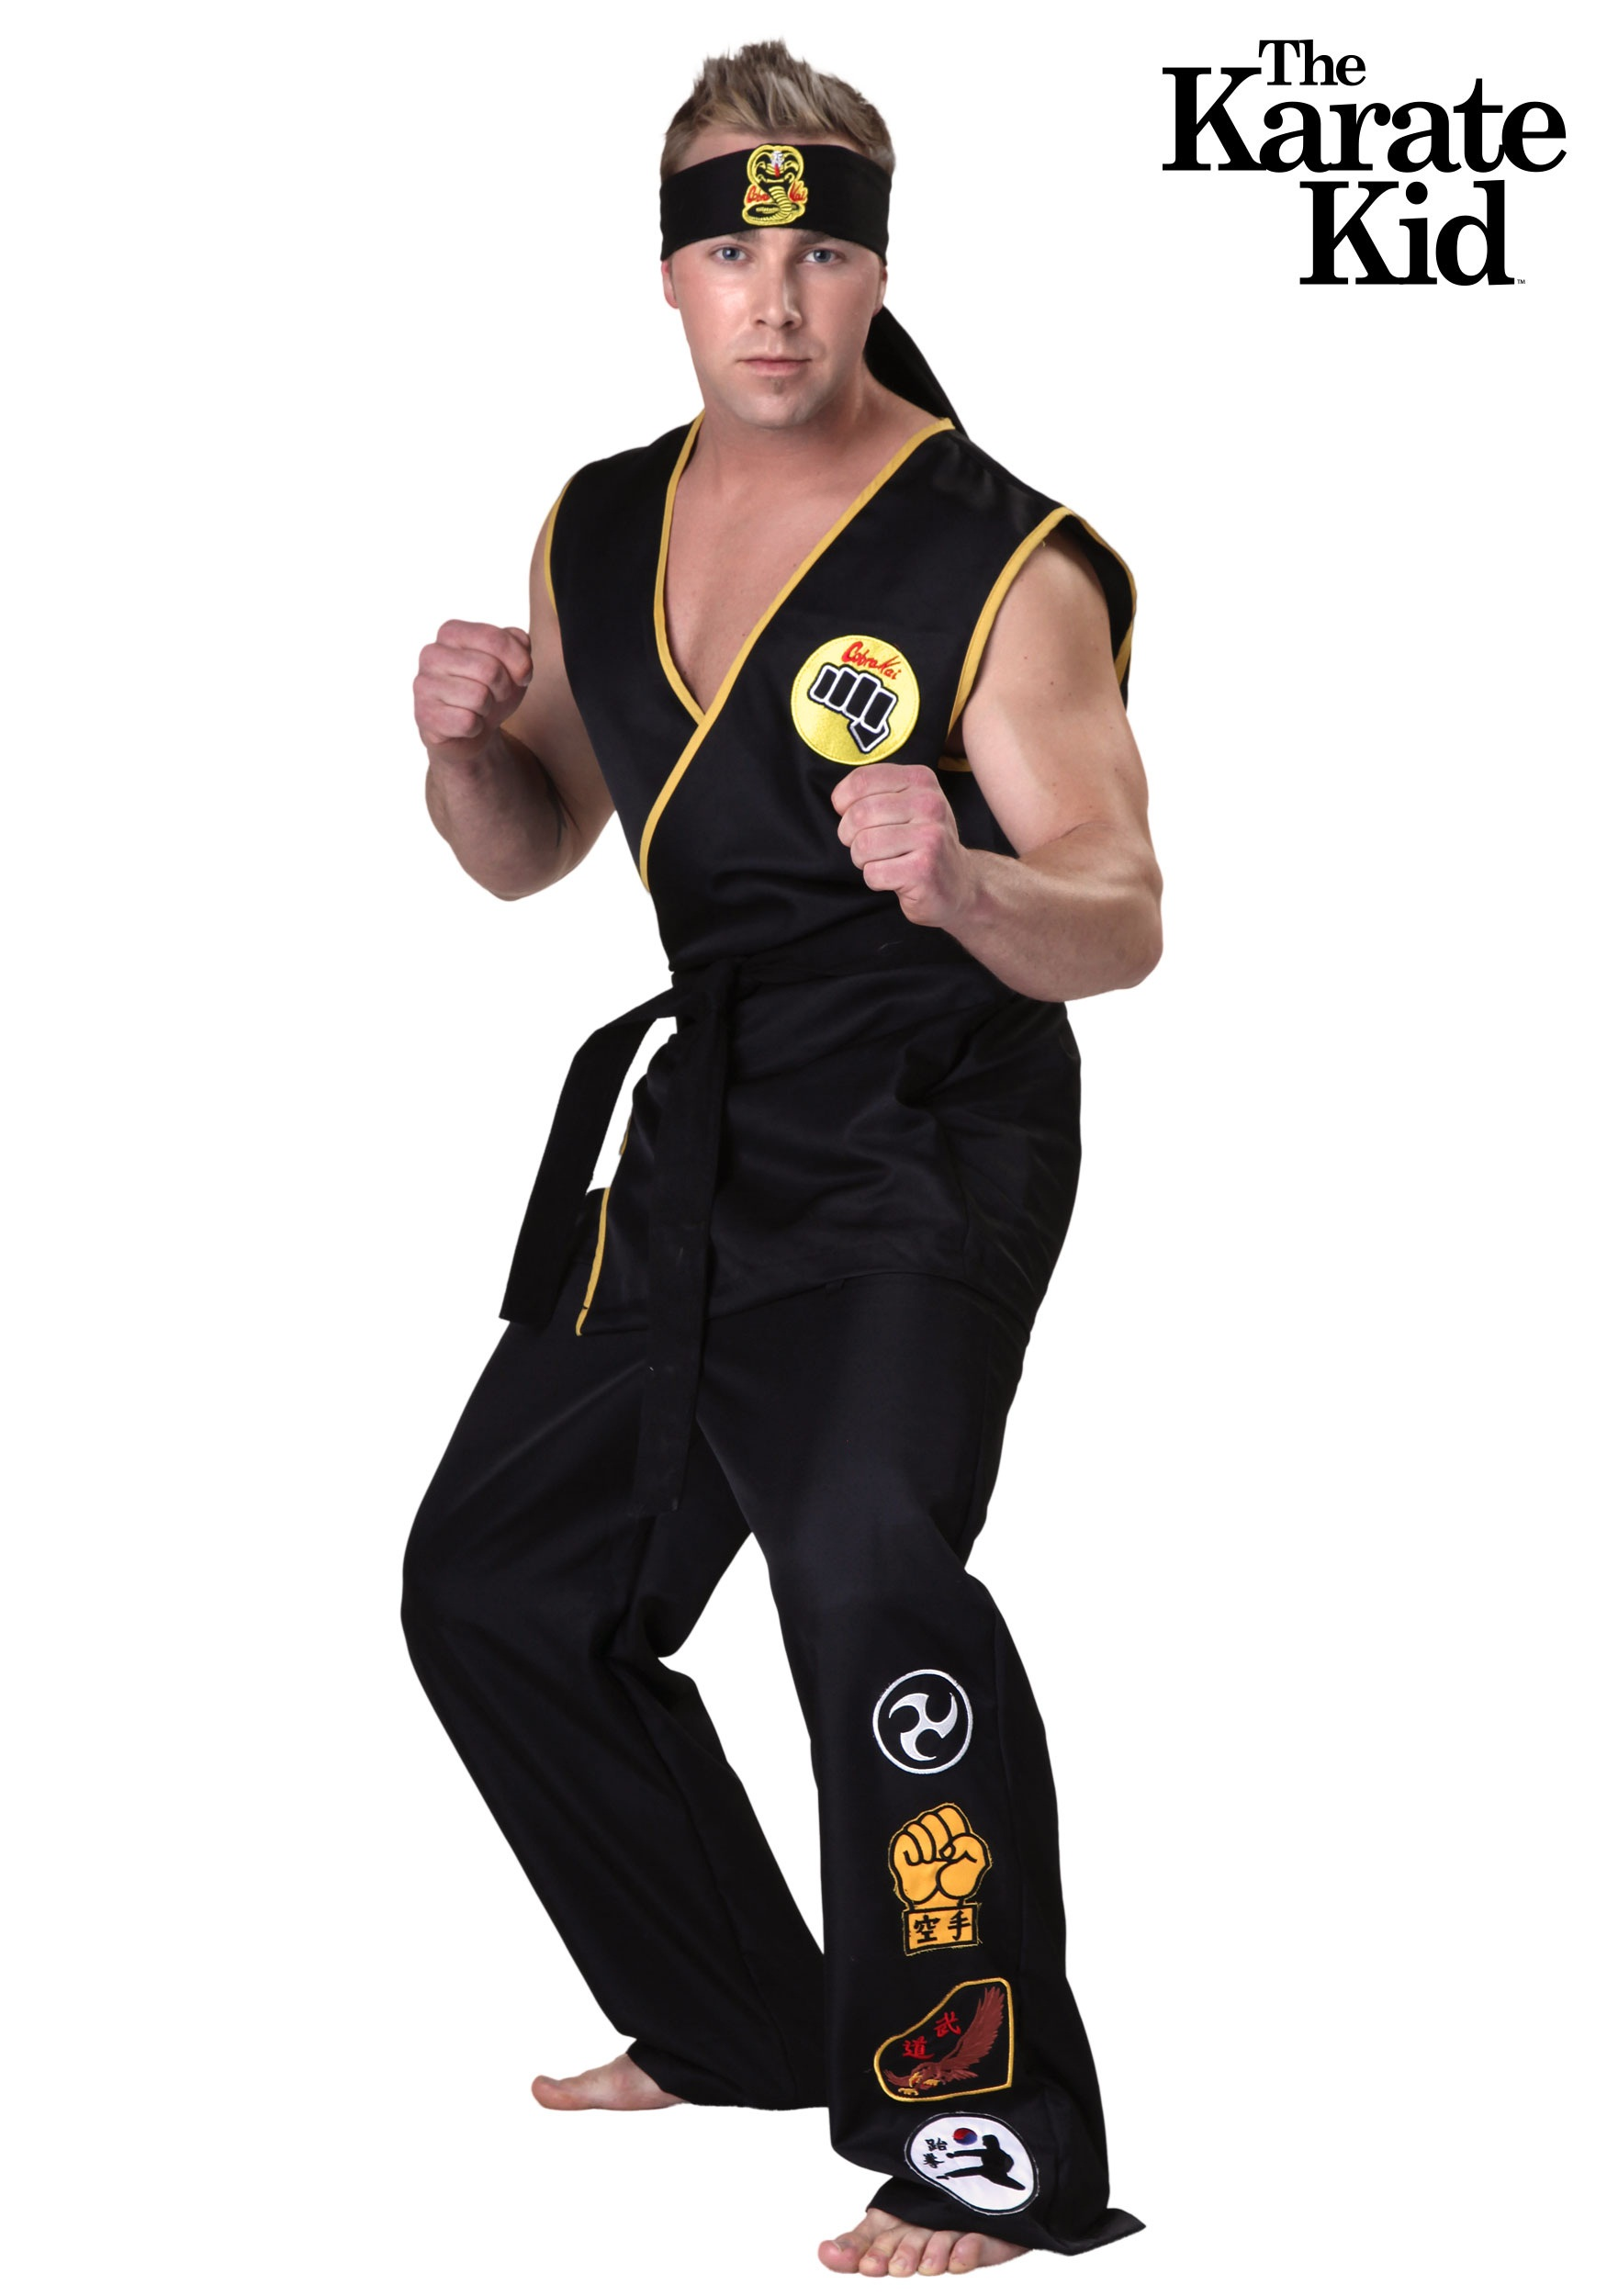 1980s costumes for kids and adults 80s outfits karate kid cobra kai costume solutioingenieria